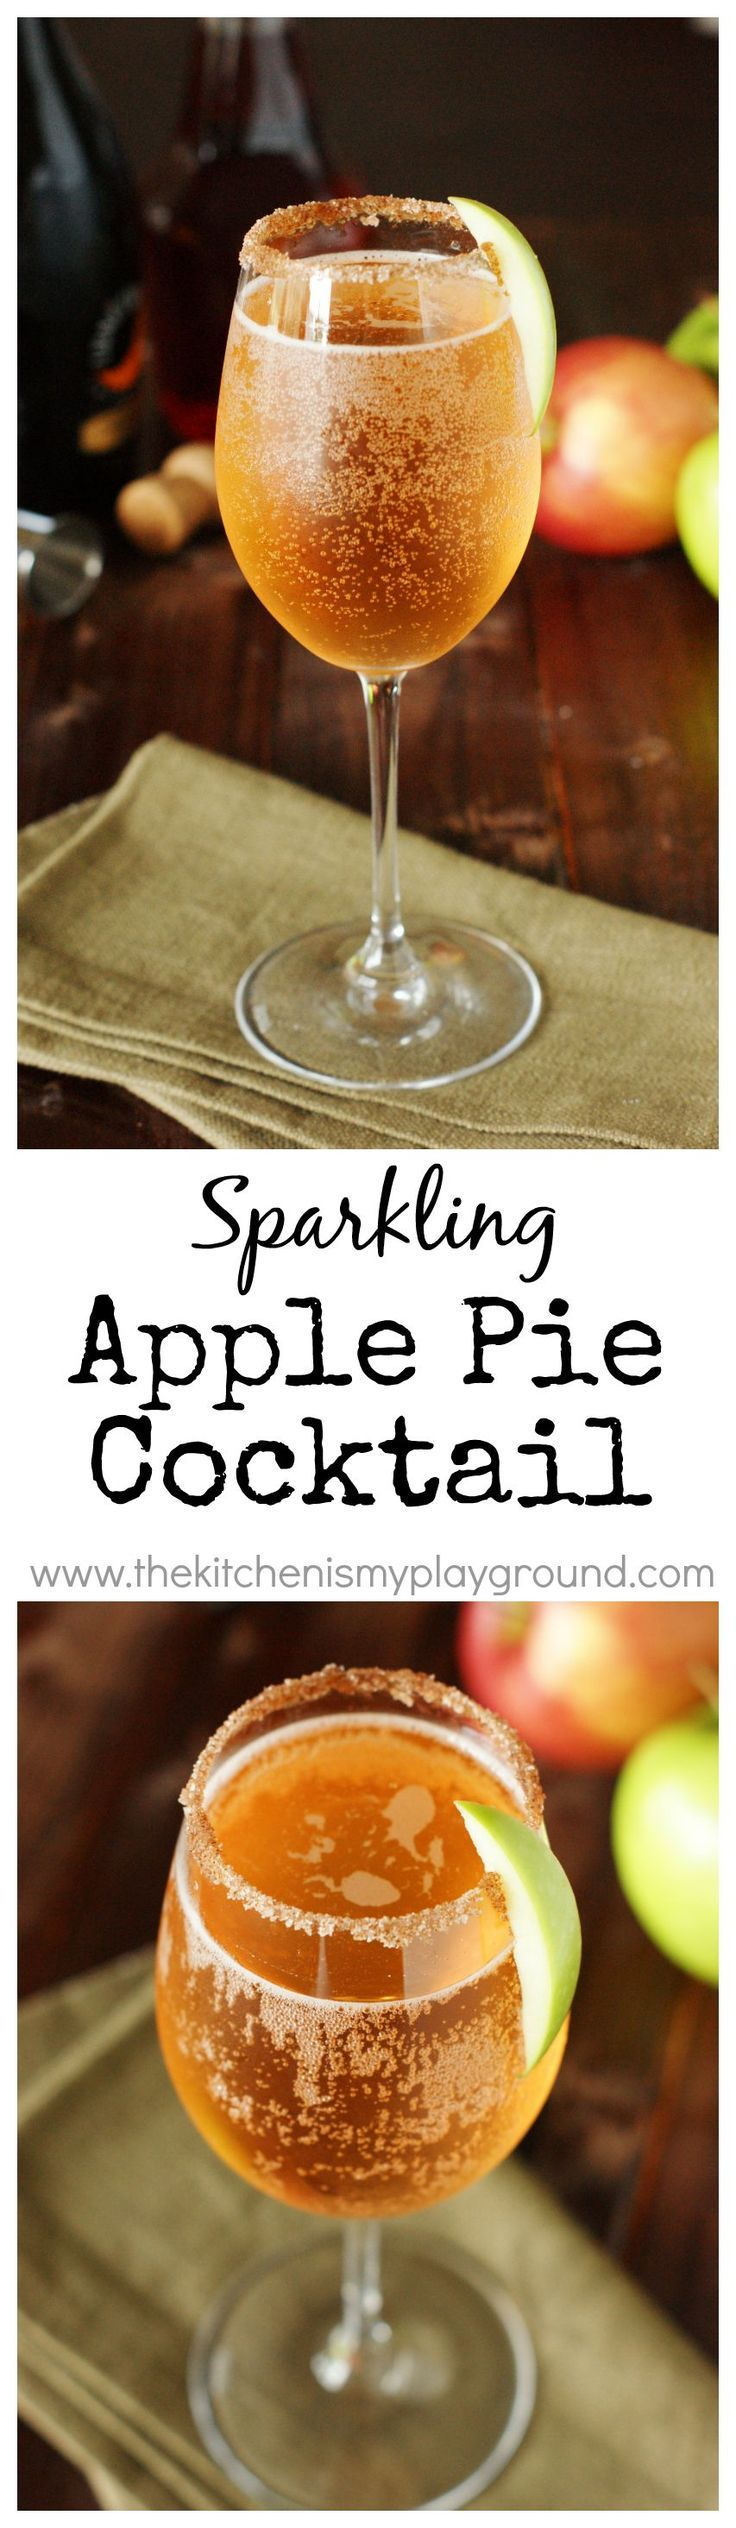 Sparkling Apple Pie Cocktail ~ a perfect cocktail for Fall sipping!   www.thekitchenismyplayground.com